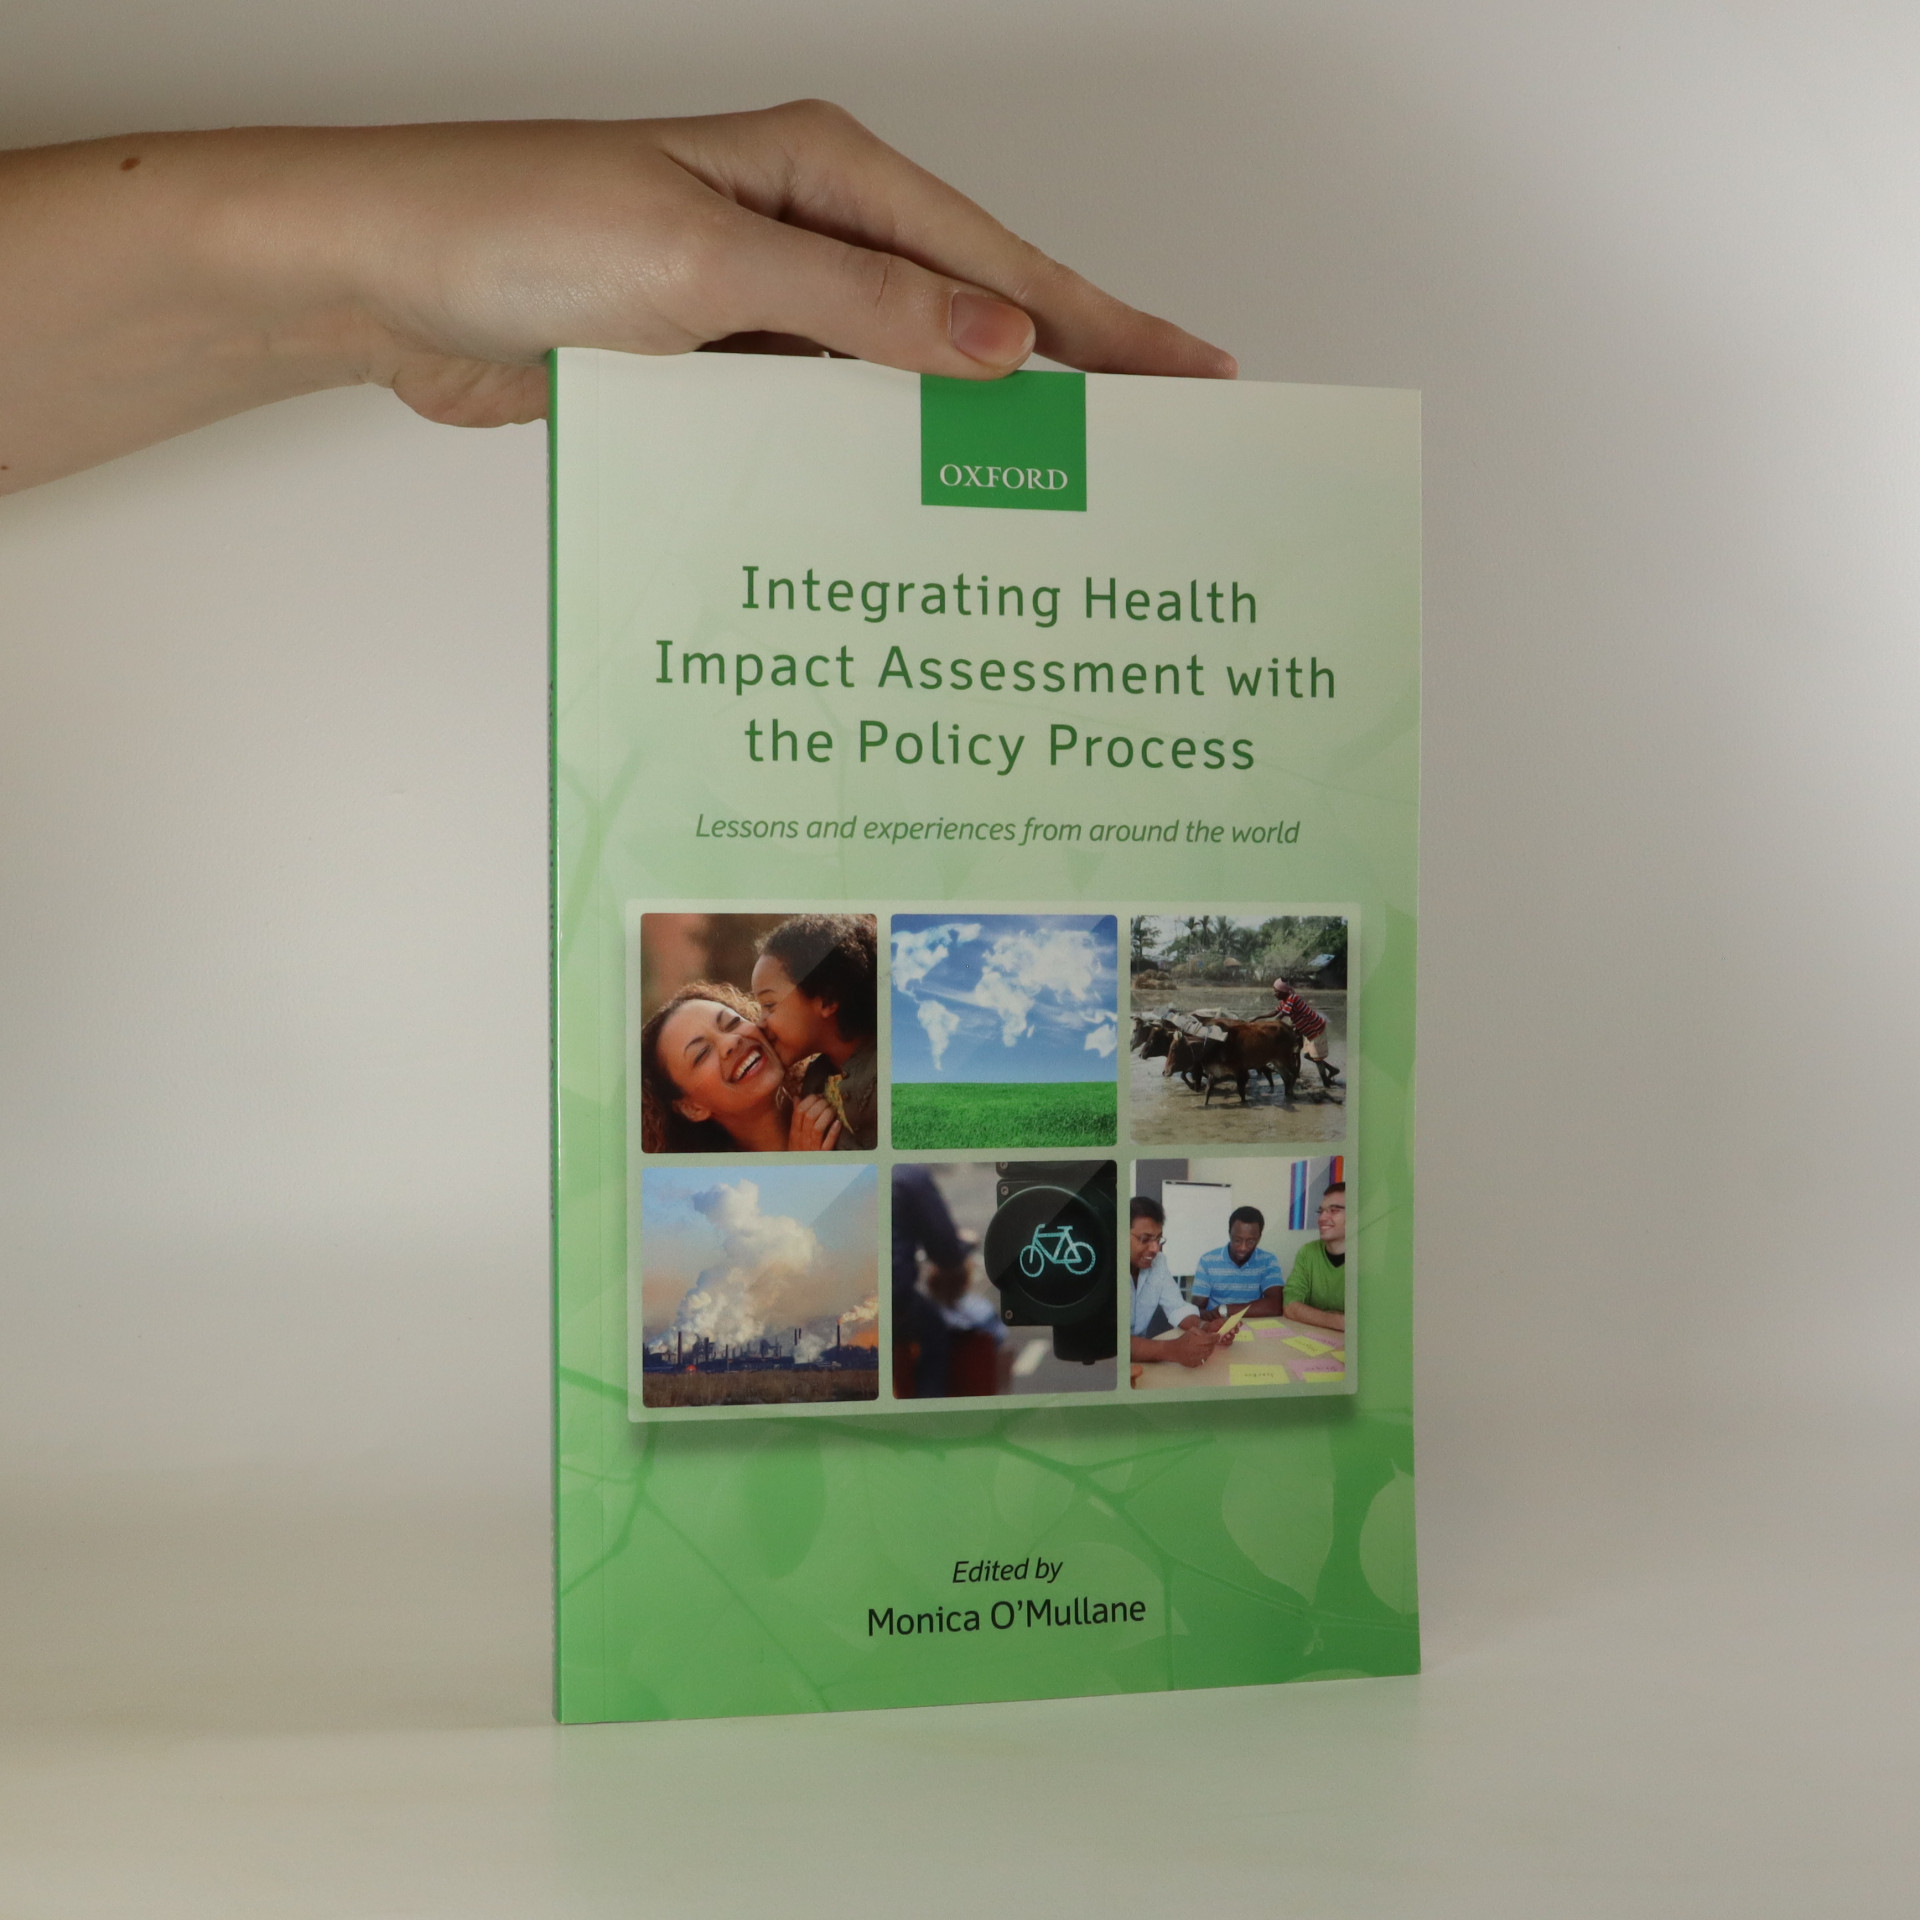 antikvární kniha Integrating health impact assessment with the policy process, 2013